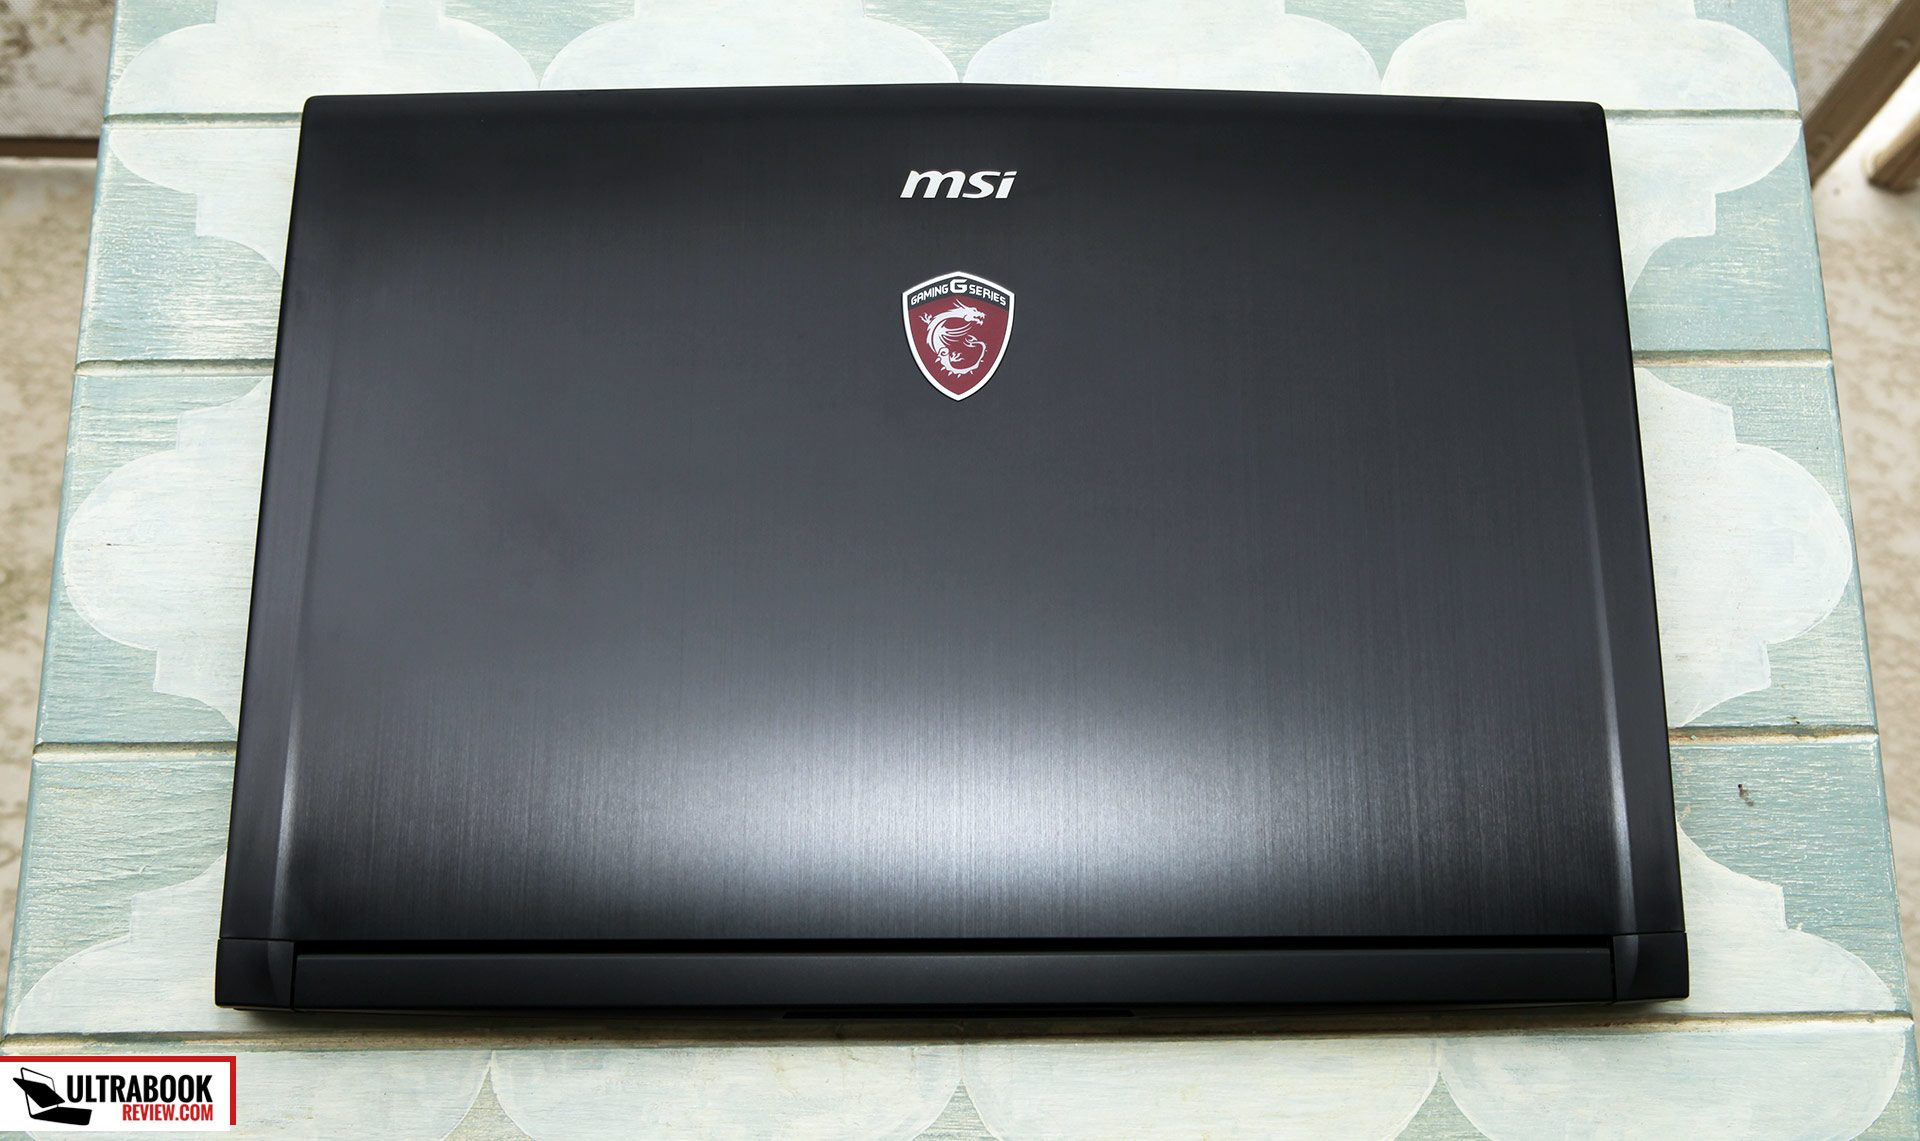 MSI GS73VR Stealth Pro review - 17-inch ultraportable with Nvidia